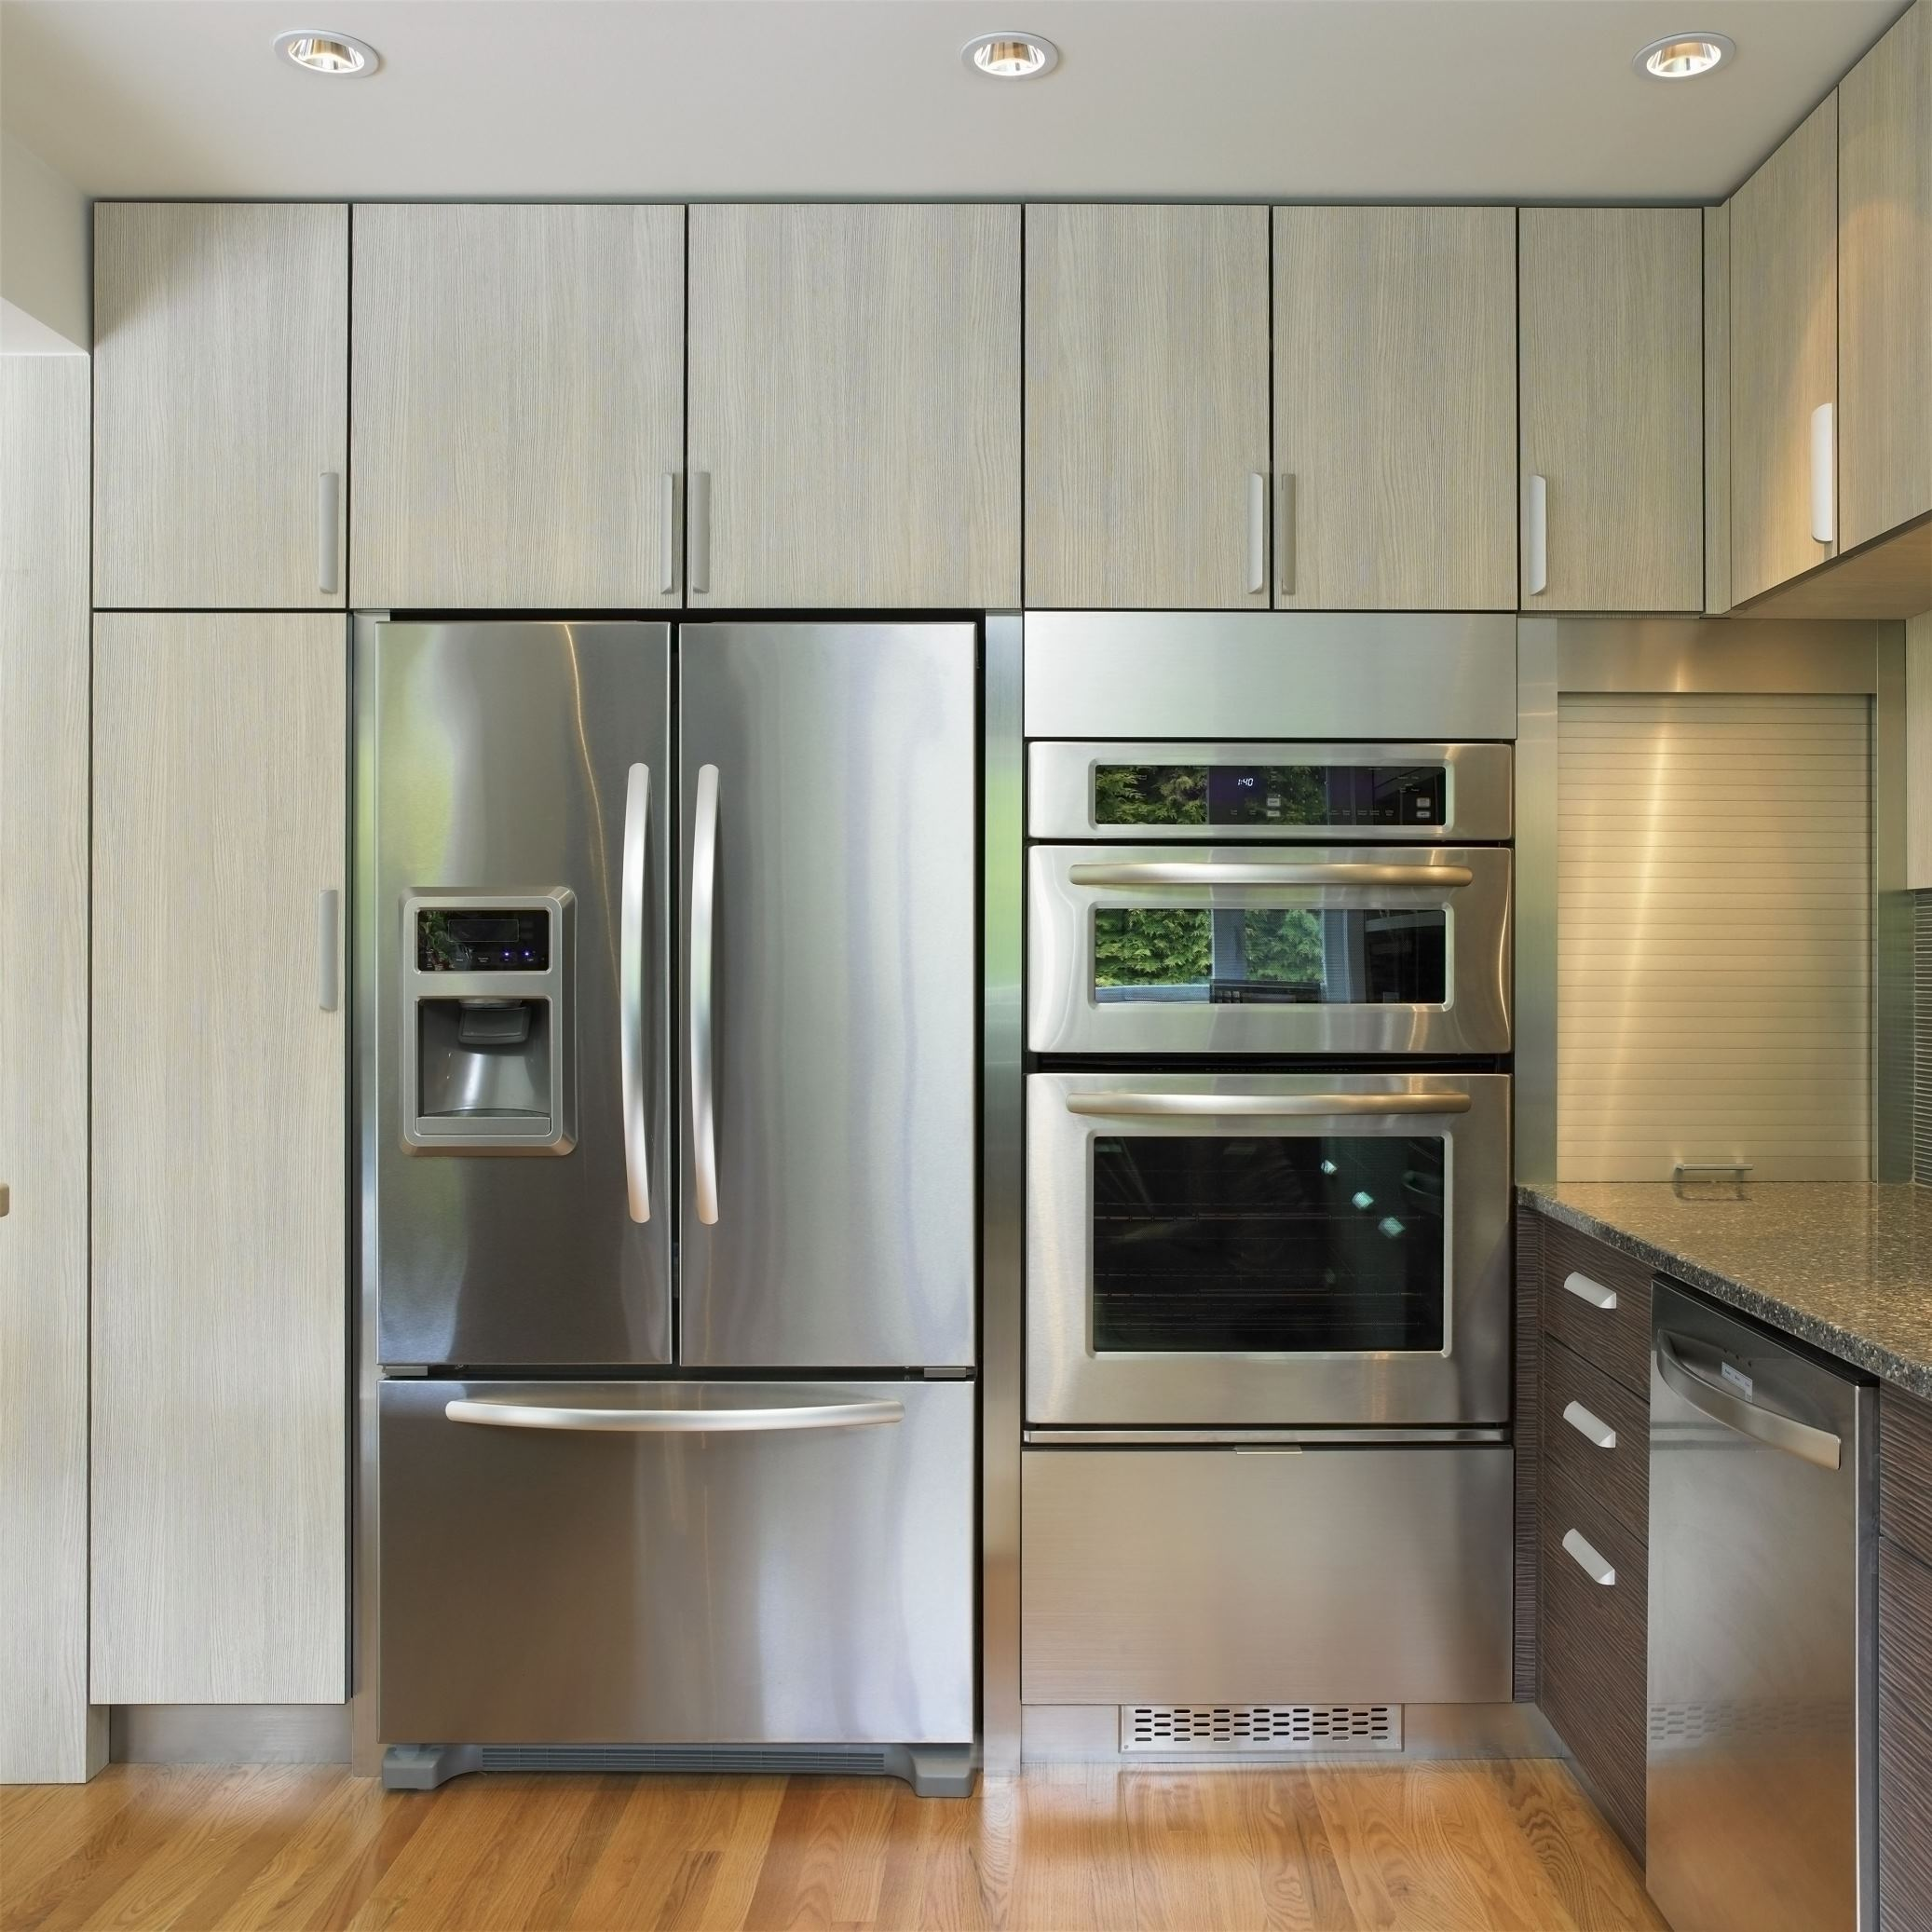 Too much stainless steel can overpower a room and make it feel cold and sterile